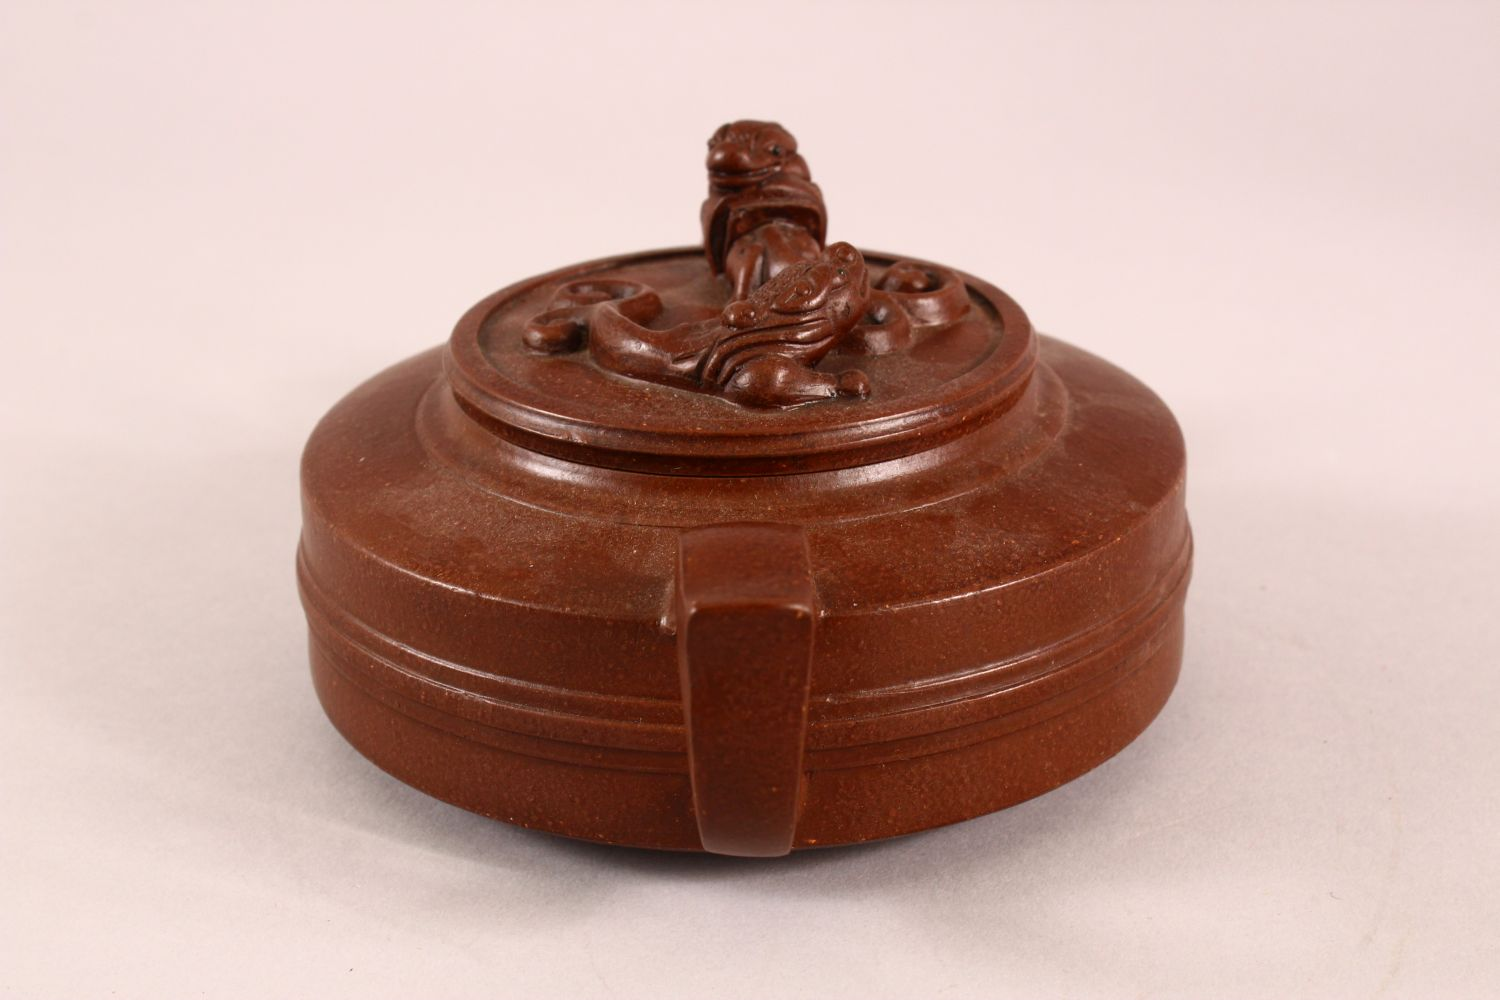 A CHINESE YIXING CLAY TEAPOT, with moulded beast like figures, the underside of the pot and lid with - Image 4 of 8